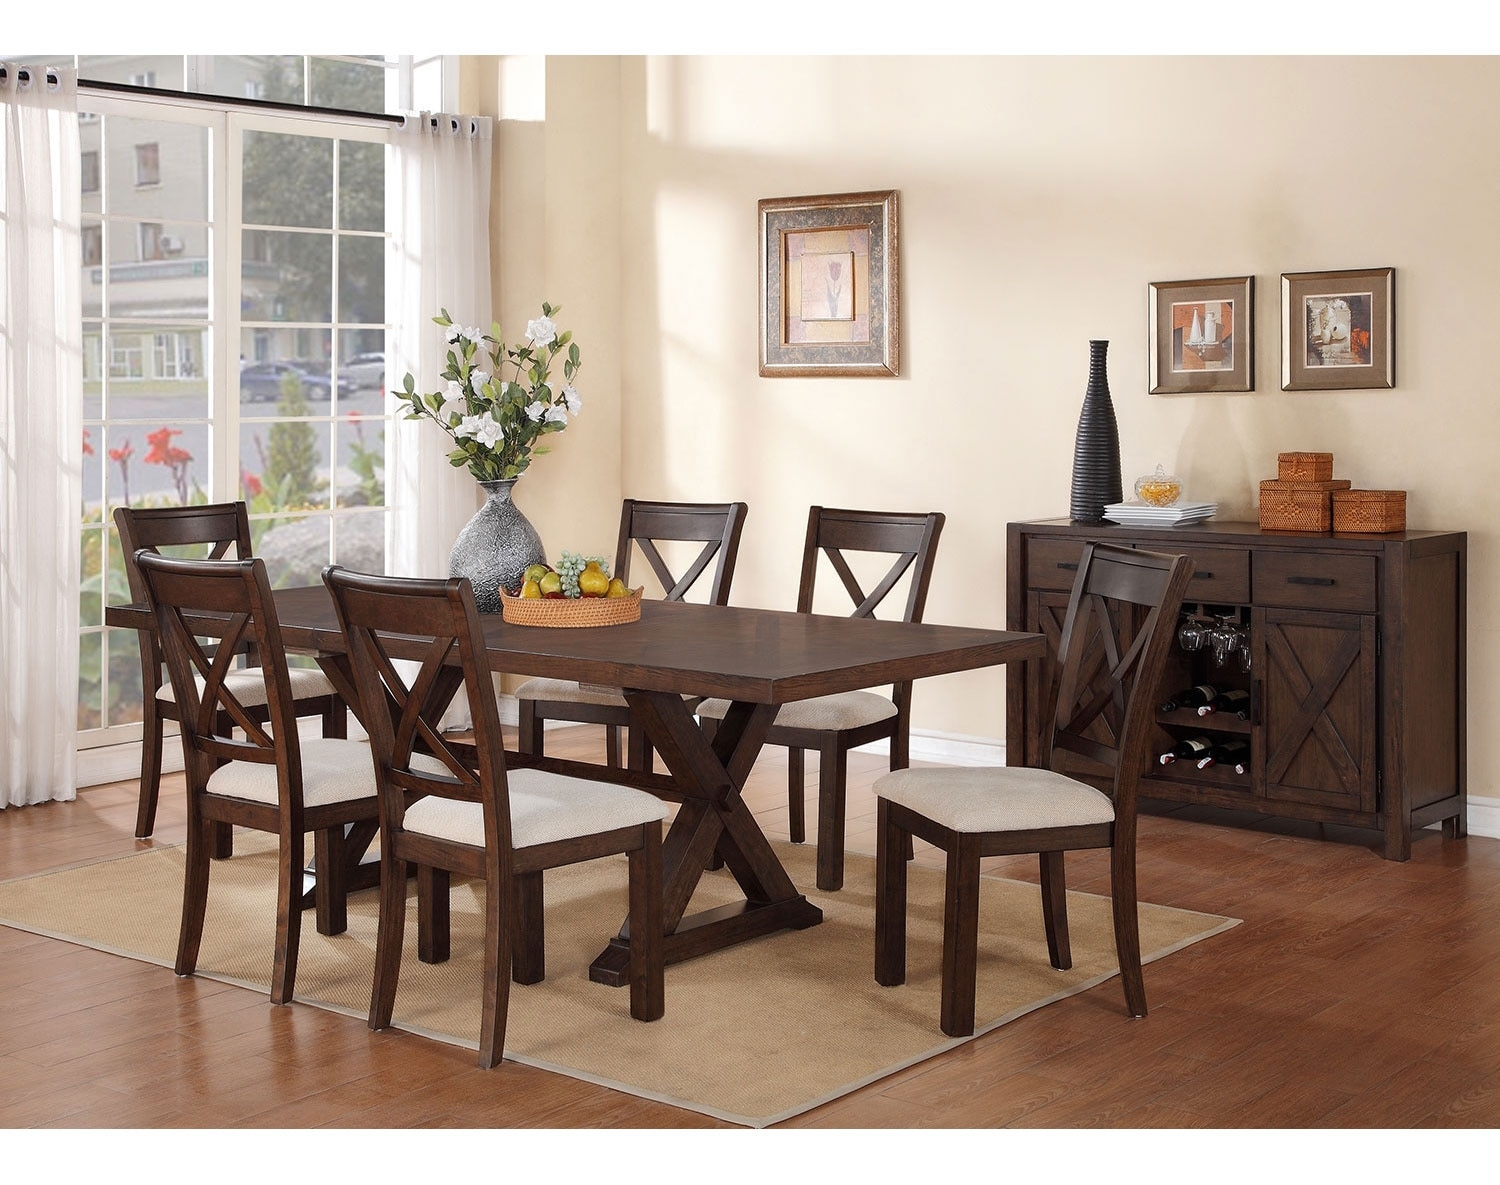 Claira 7 piece dining room set rustic brown leon 39 s for Furniture in room